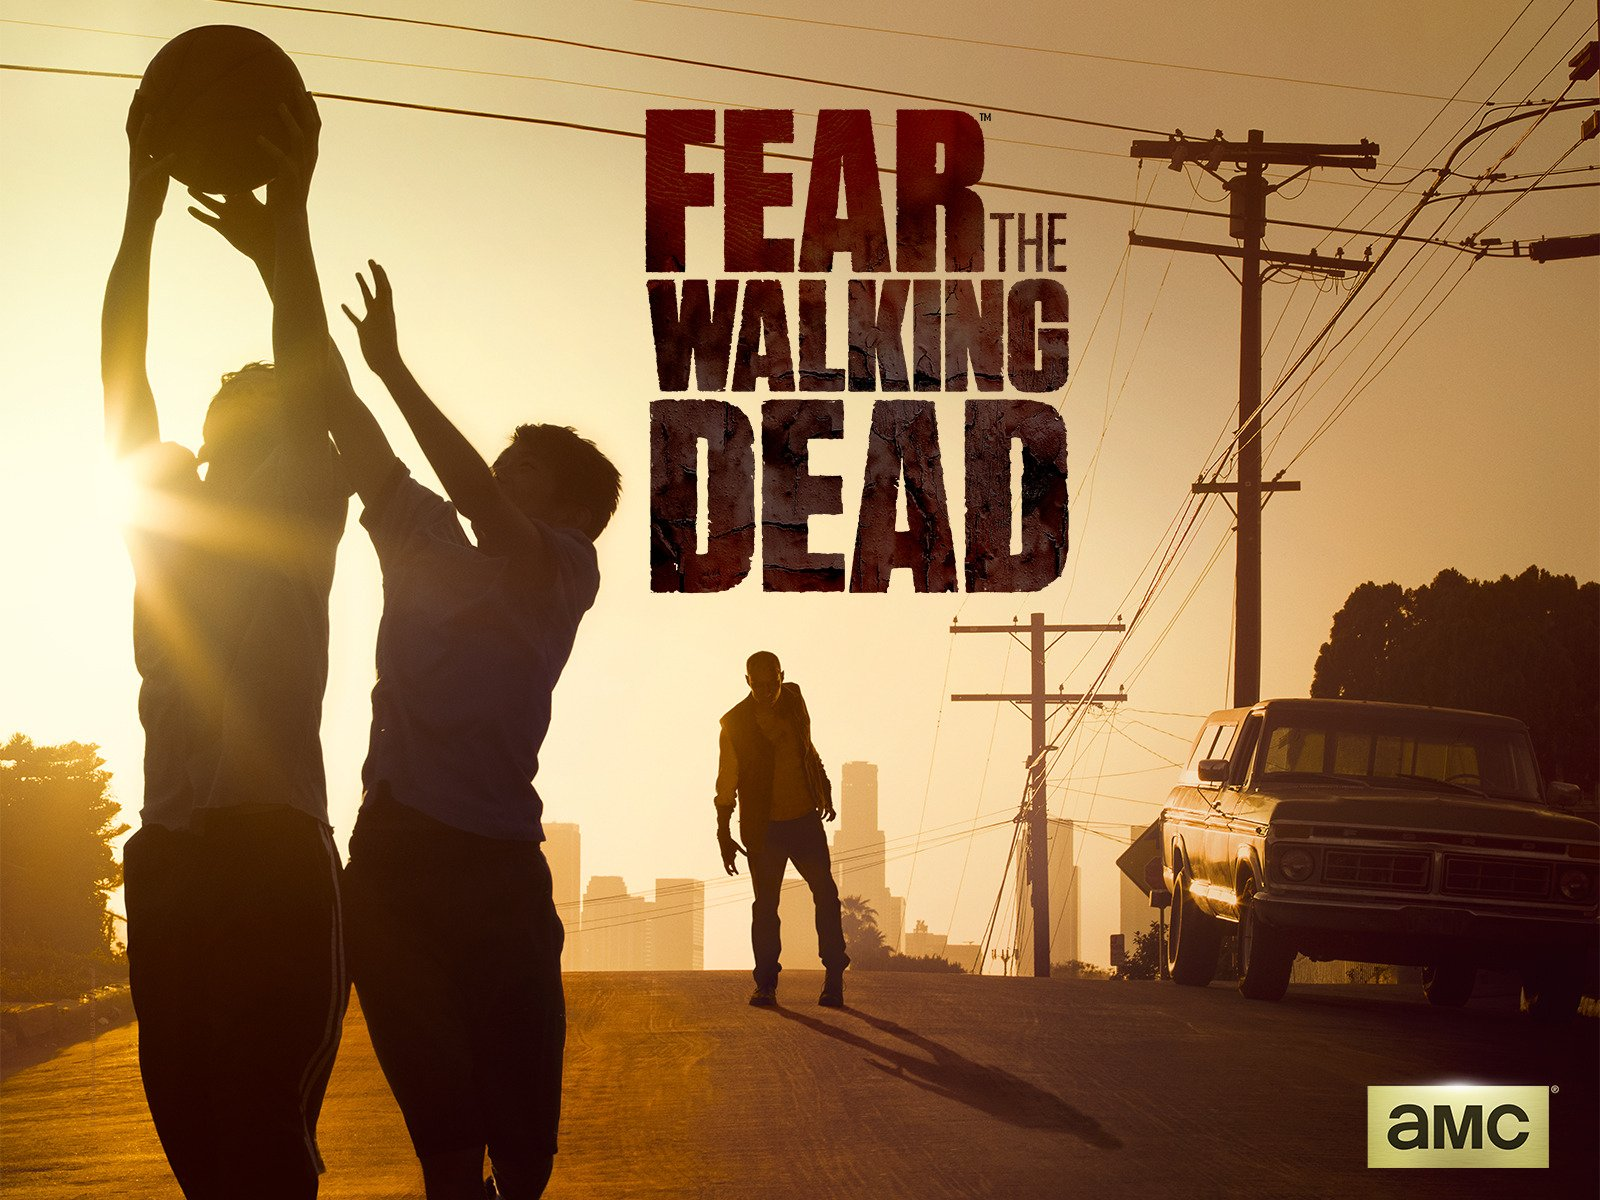 fear the walking dead season 1 watch online for free